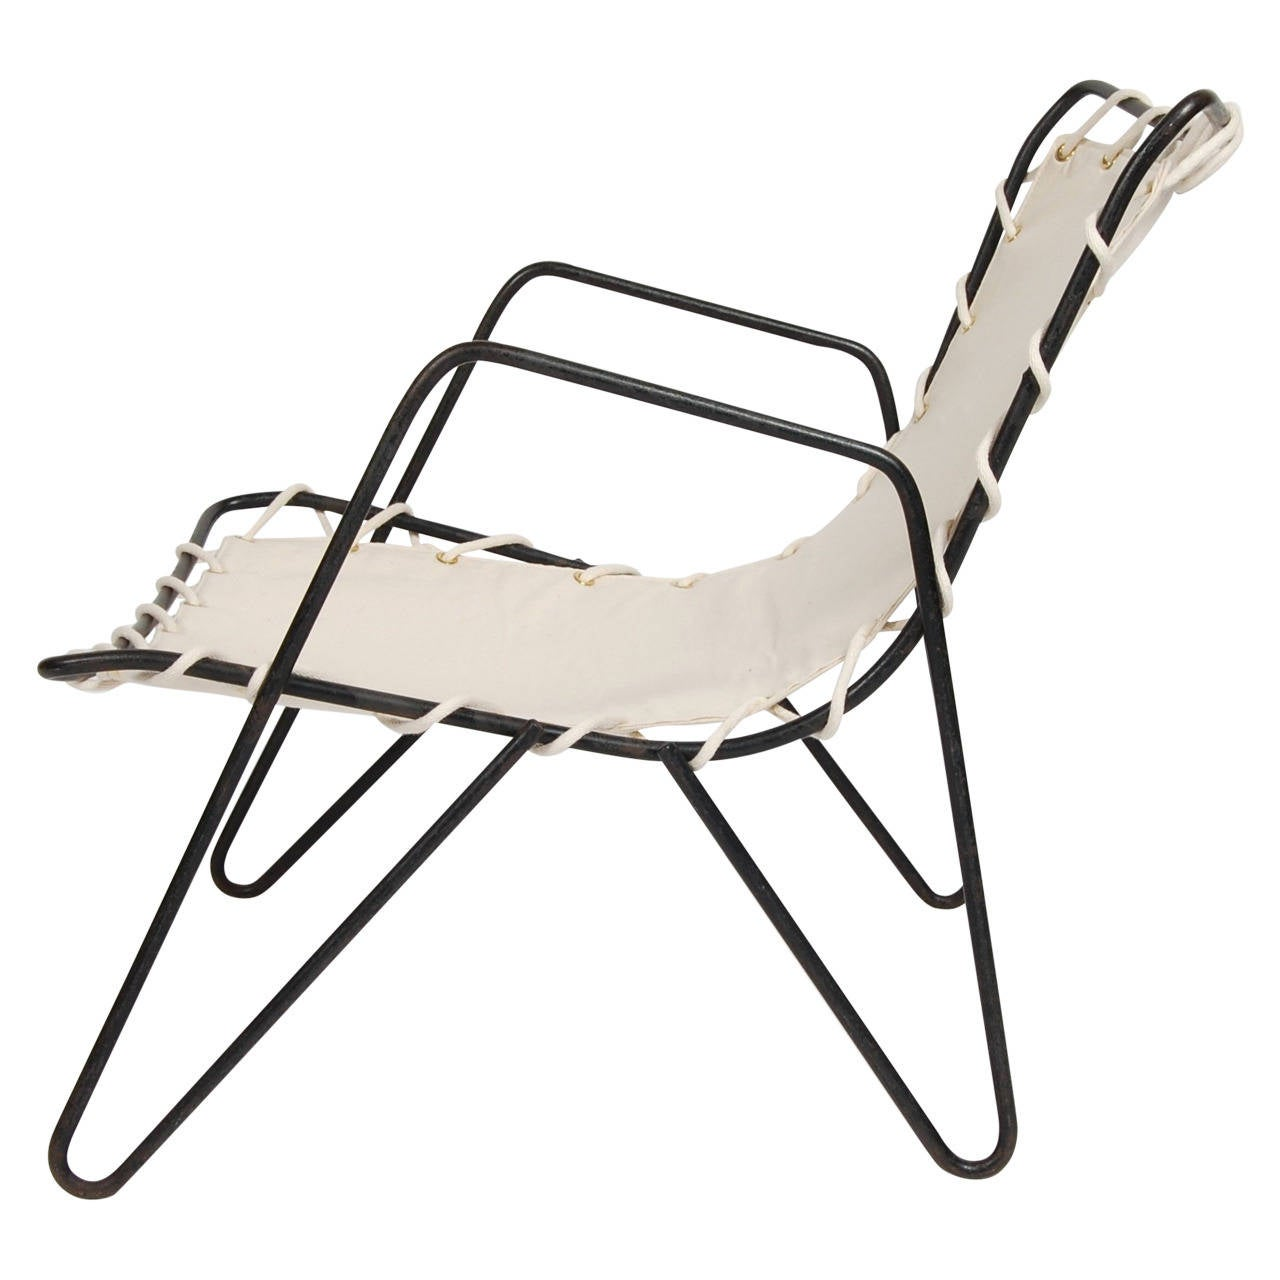 Modernist Iron and Canvas Patio Lounge Chair at 1stdibs